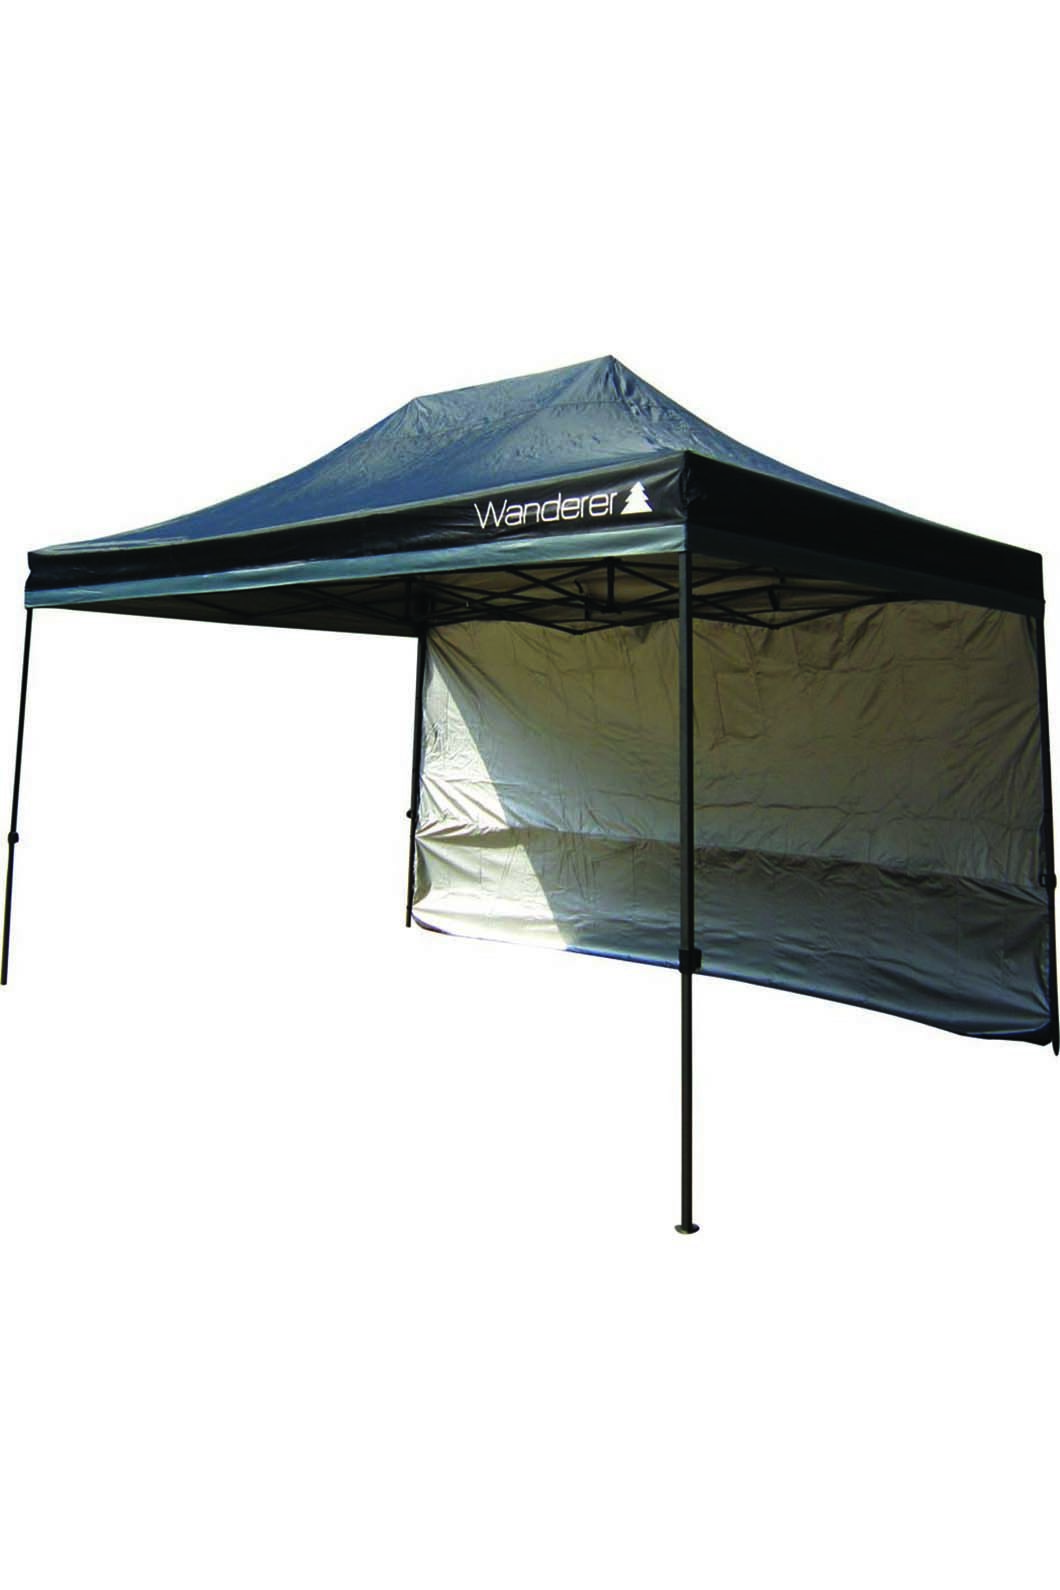 Wanderer Gazebo Ultimate Jumbo Heavy Duty 3x4m Solid Wall Kit, None, hi-res